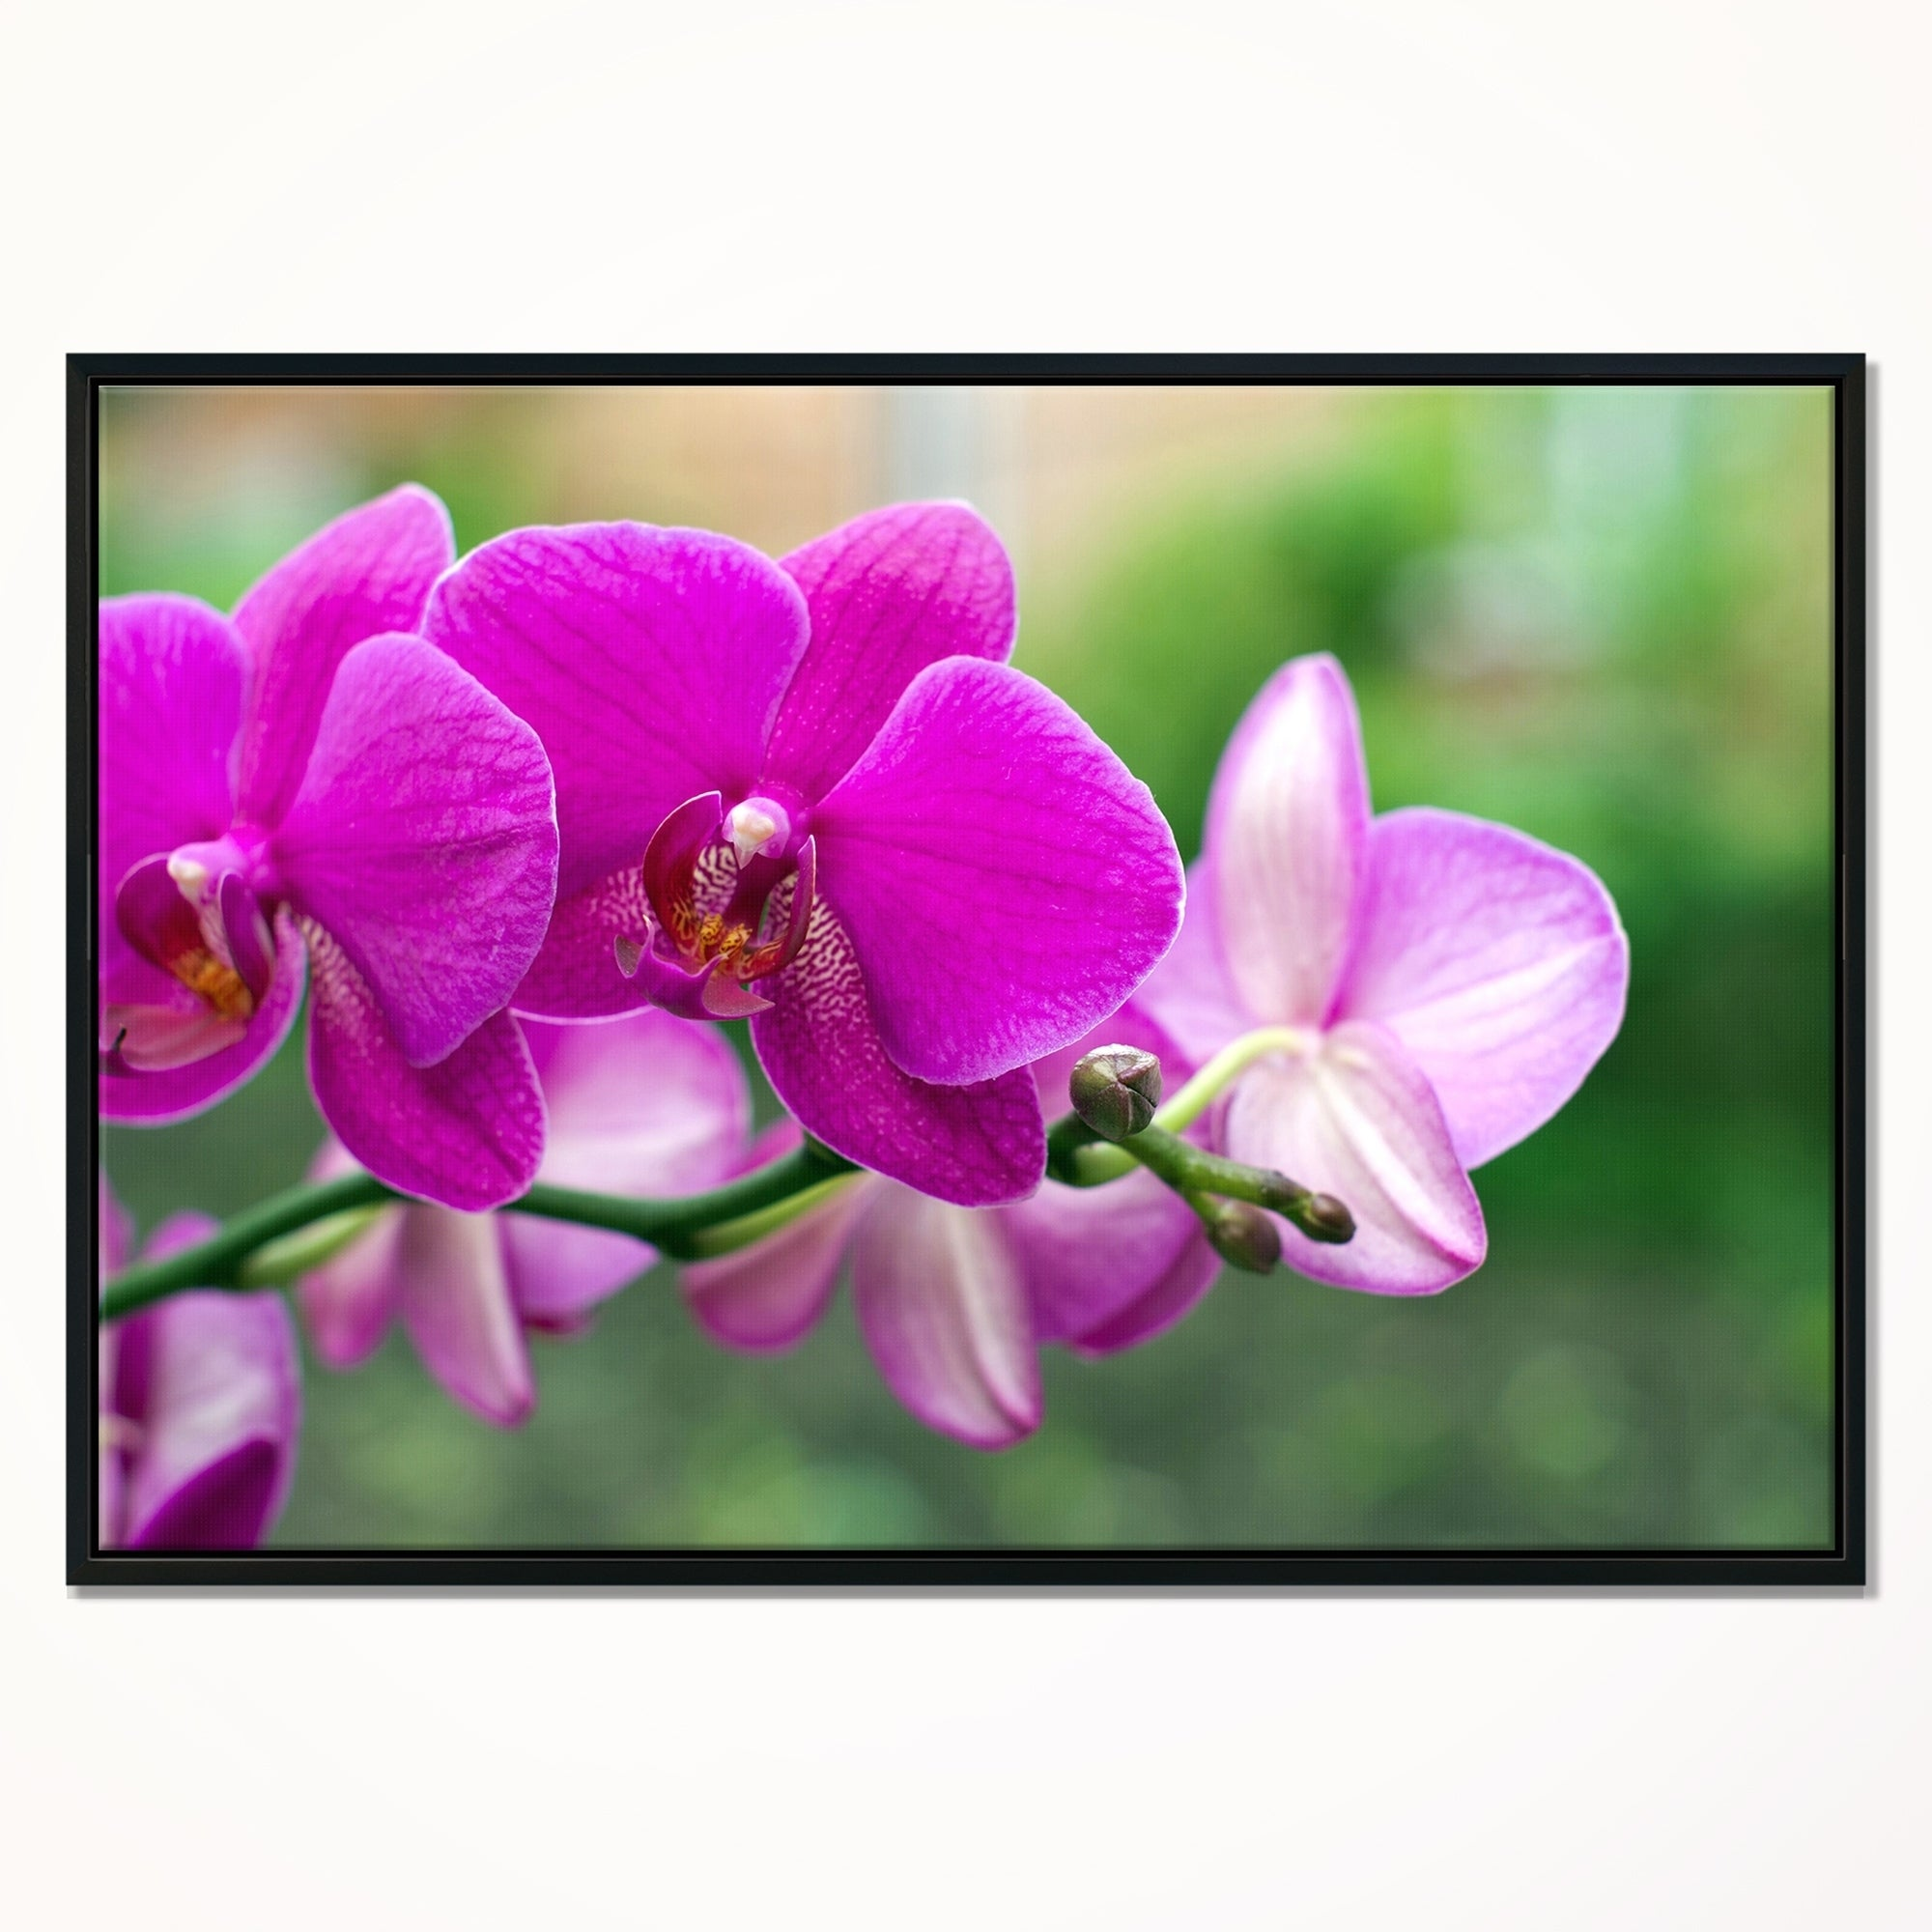 GREEN ORCHID FLOWER CLOSE UP CANVAS PRINT WALL ART READY TO HANG